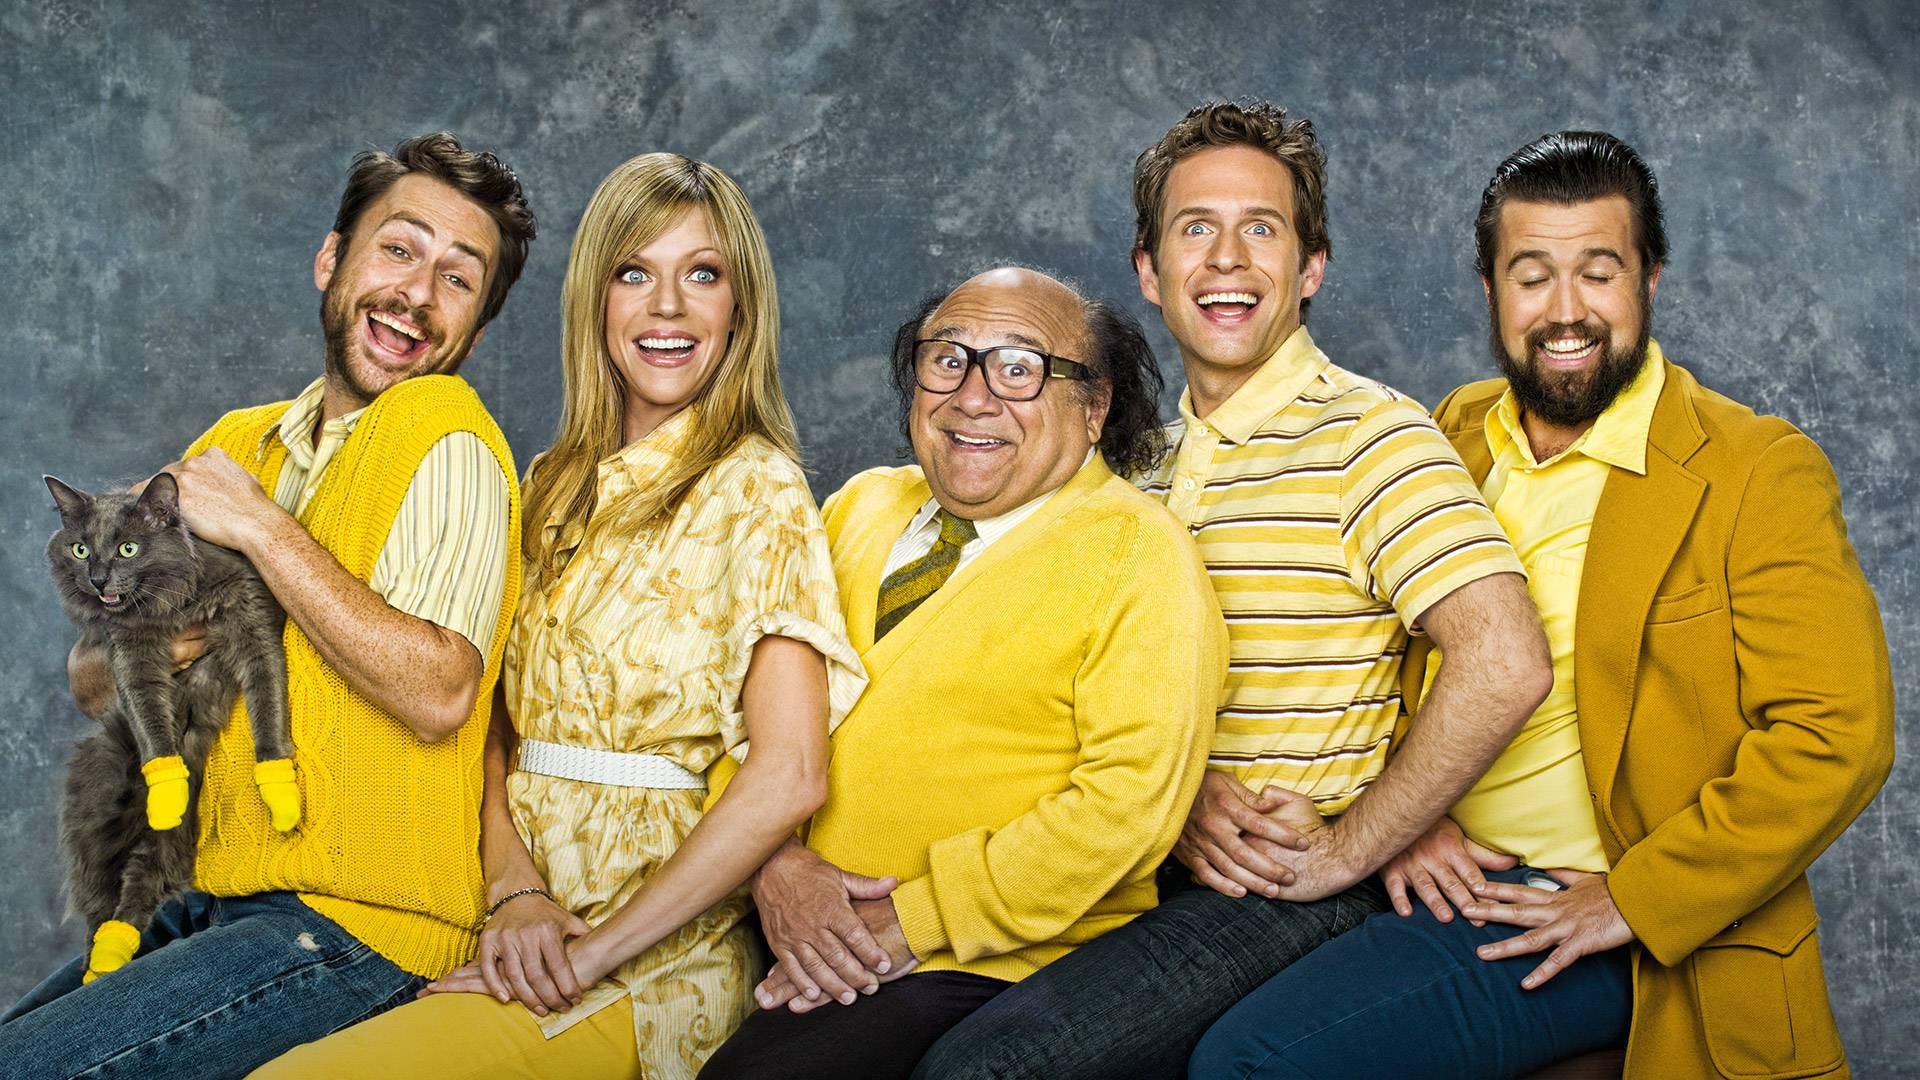 """The cast of """"It's Always Sunny"""" (from left to right): Charlie Day, Kaitlin Olson, Danny DeVito, and creators Glenn Howerton and Rob McElhenney."""